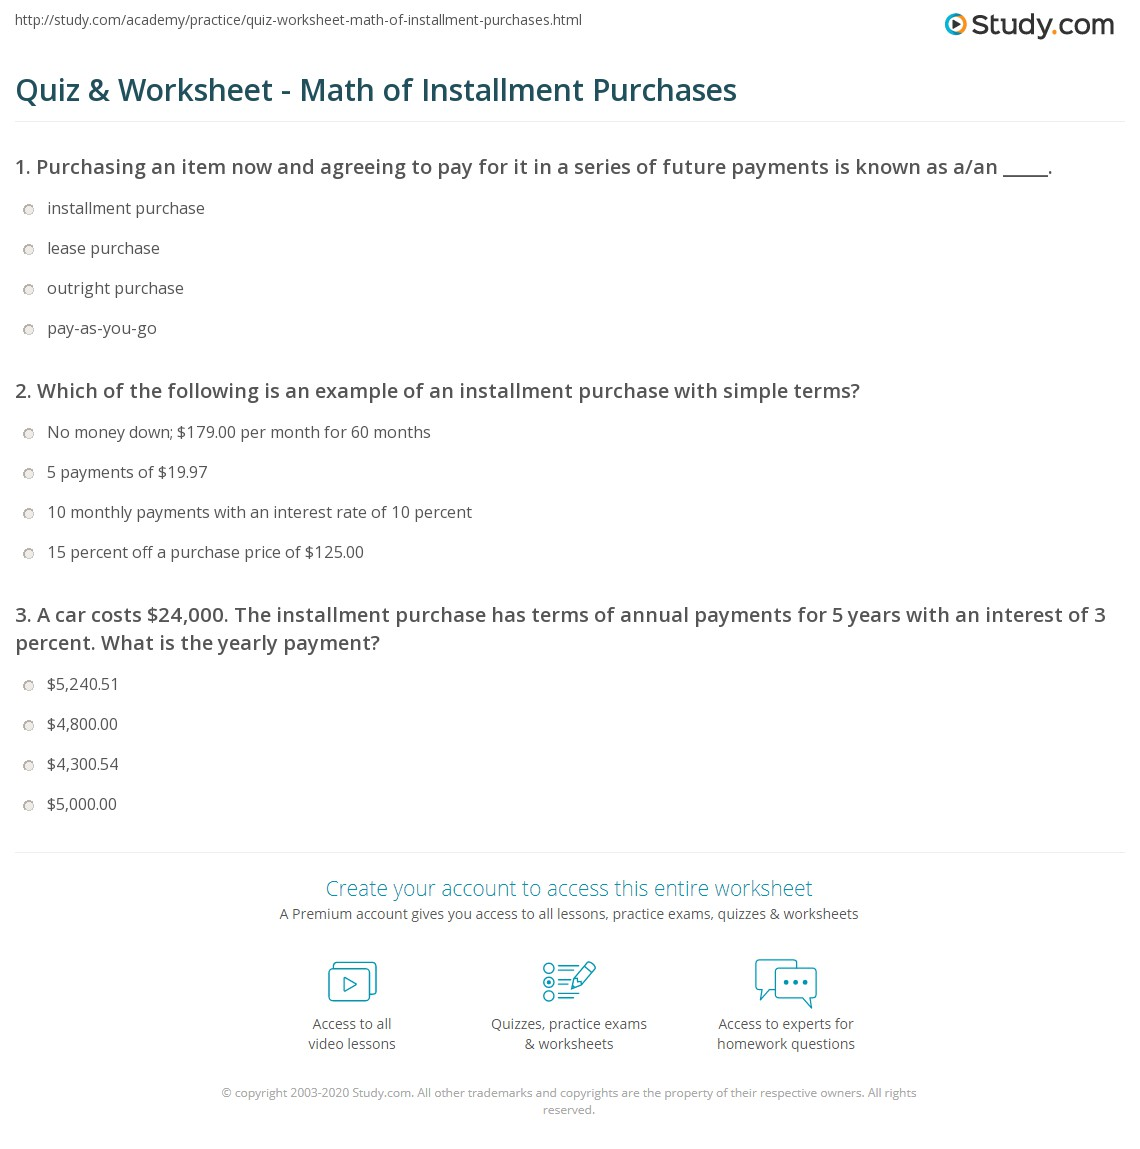 quiz worksheet math of installment purchases. Black Bedroom Furniture Sets. Home Design Ideas